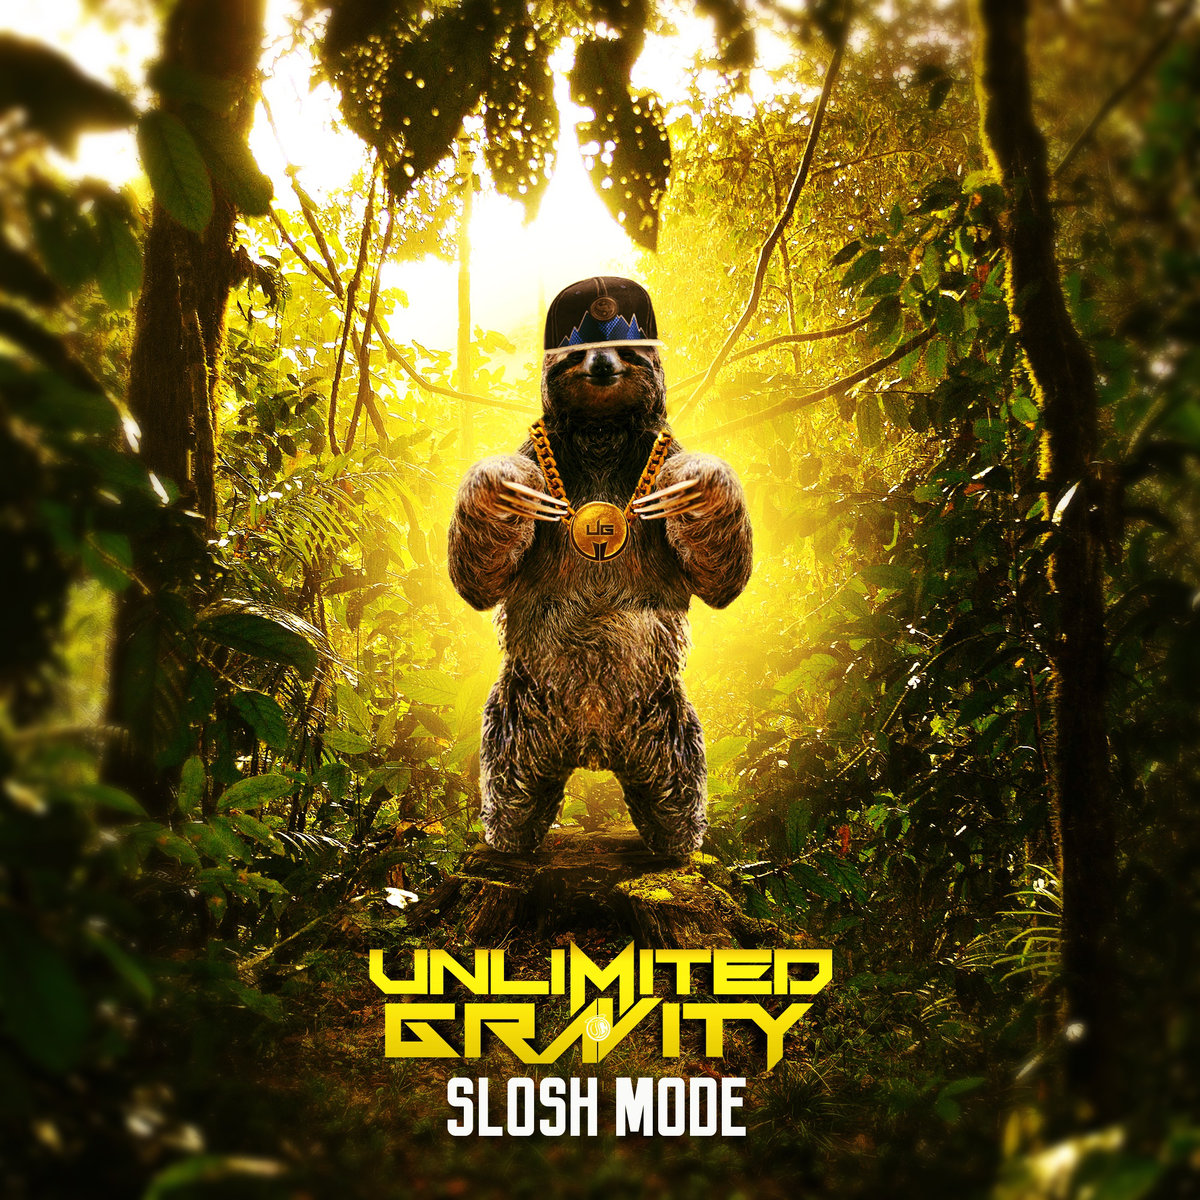 Unlimited Gravity - Down Low w/ Psymbionic @ 'Slosh Mode' album (Austin)